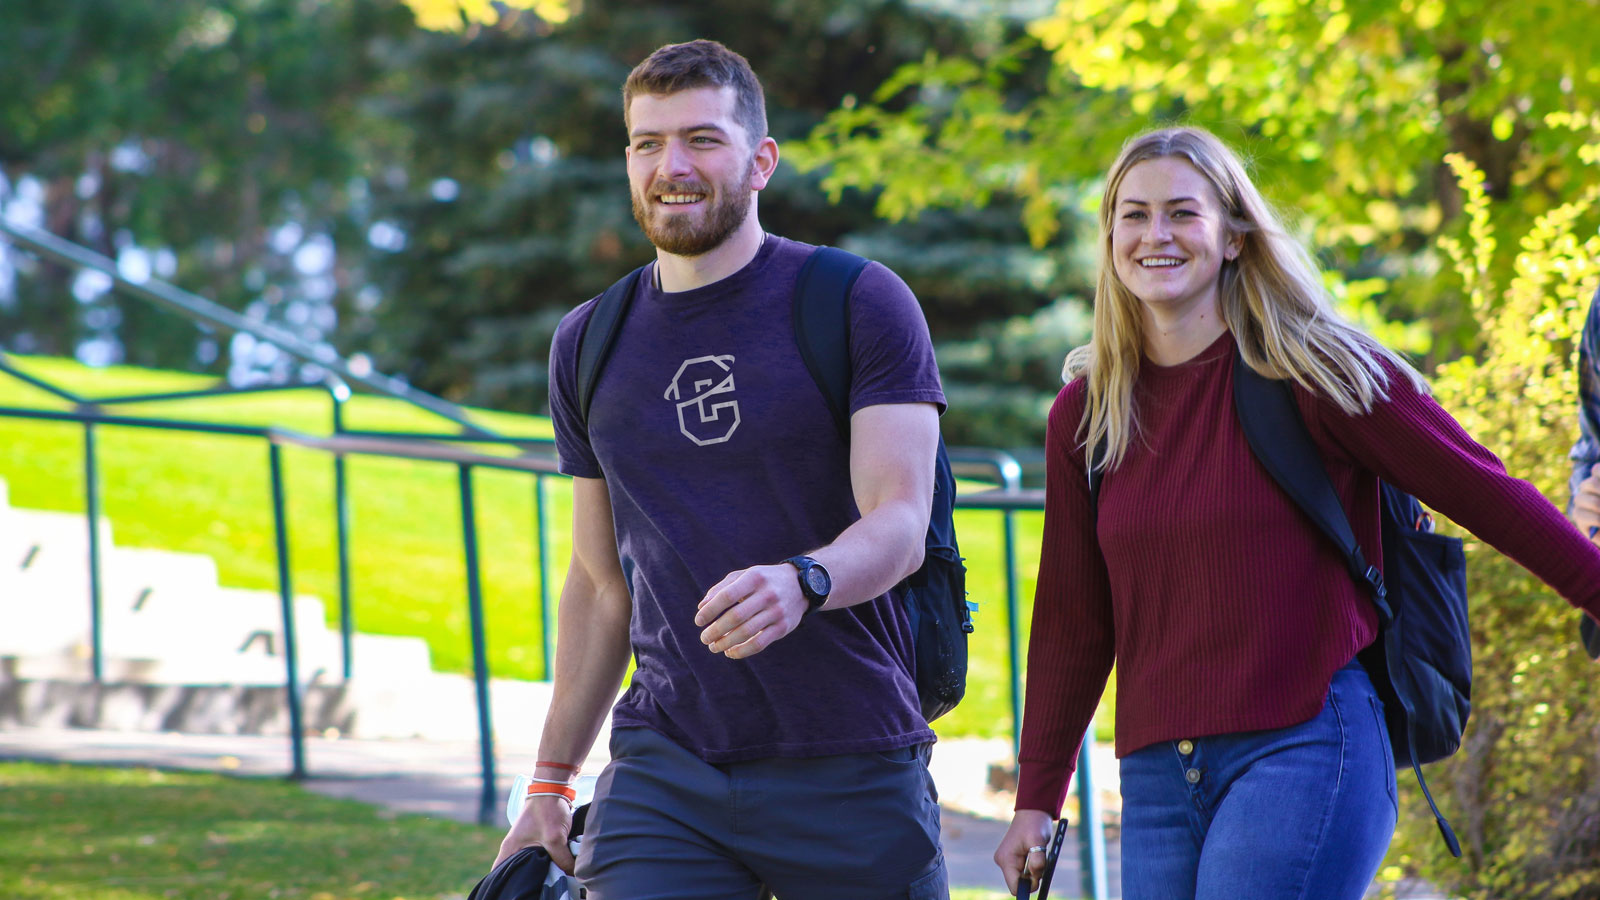 Two students in walking up path